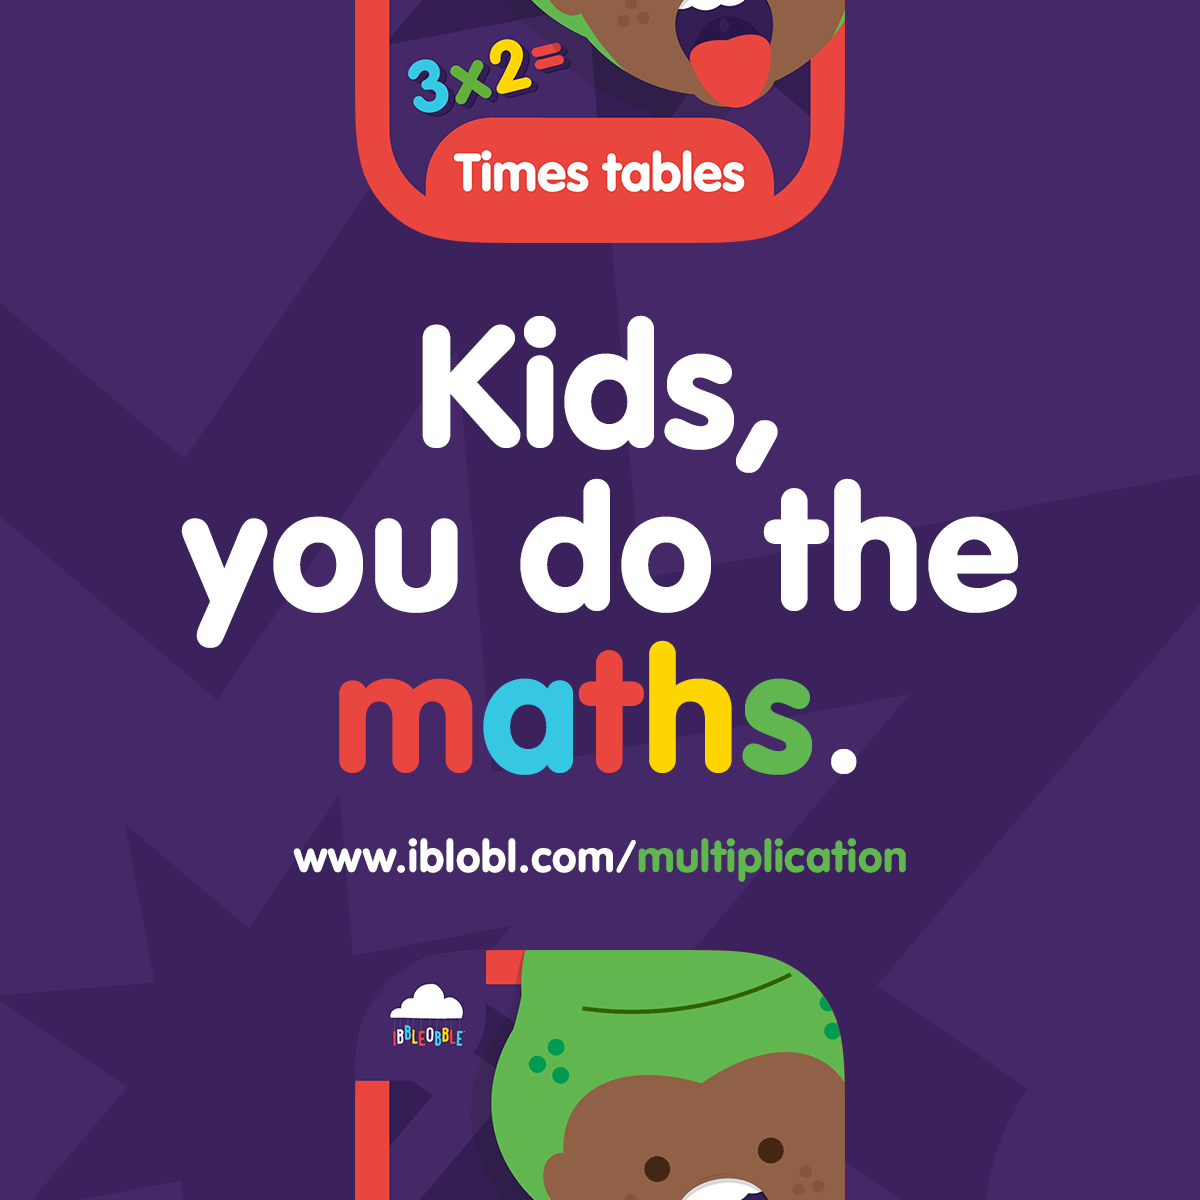 🐸#Practice #multiplication the boring way or the FUN way... #kids, you do the #maths! .    #classroom #teacher #education #school #teachers #teaching #teacherlife #iteach #iphone #ipad #appletv #Saturday #SaturdayMotivation #SaturdayMorning #saturYAY